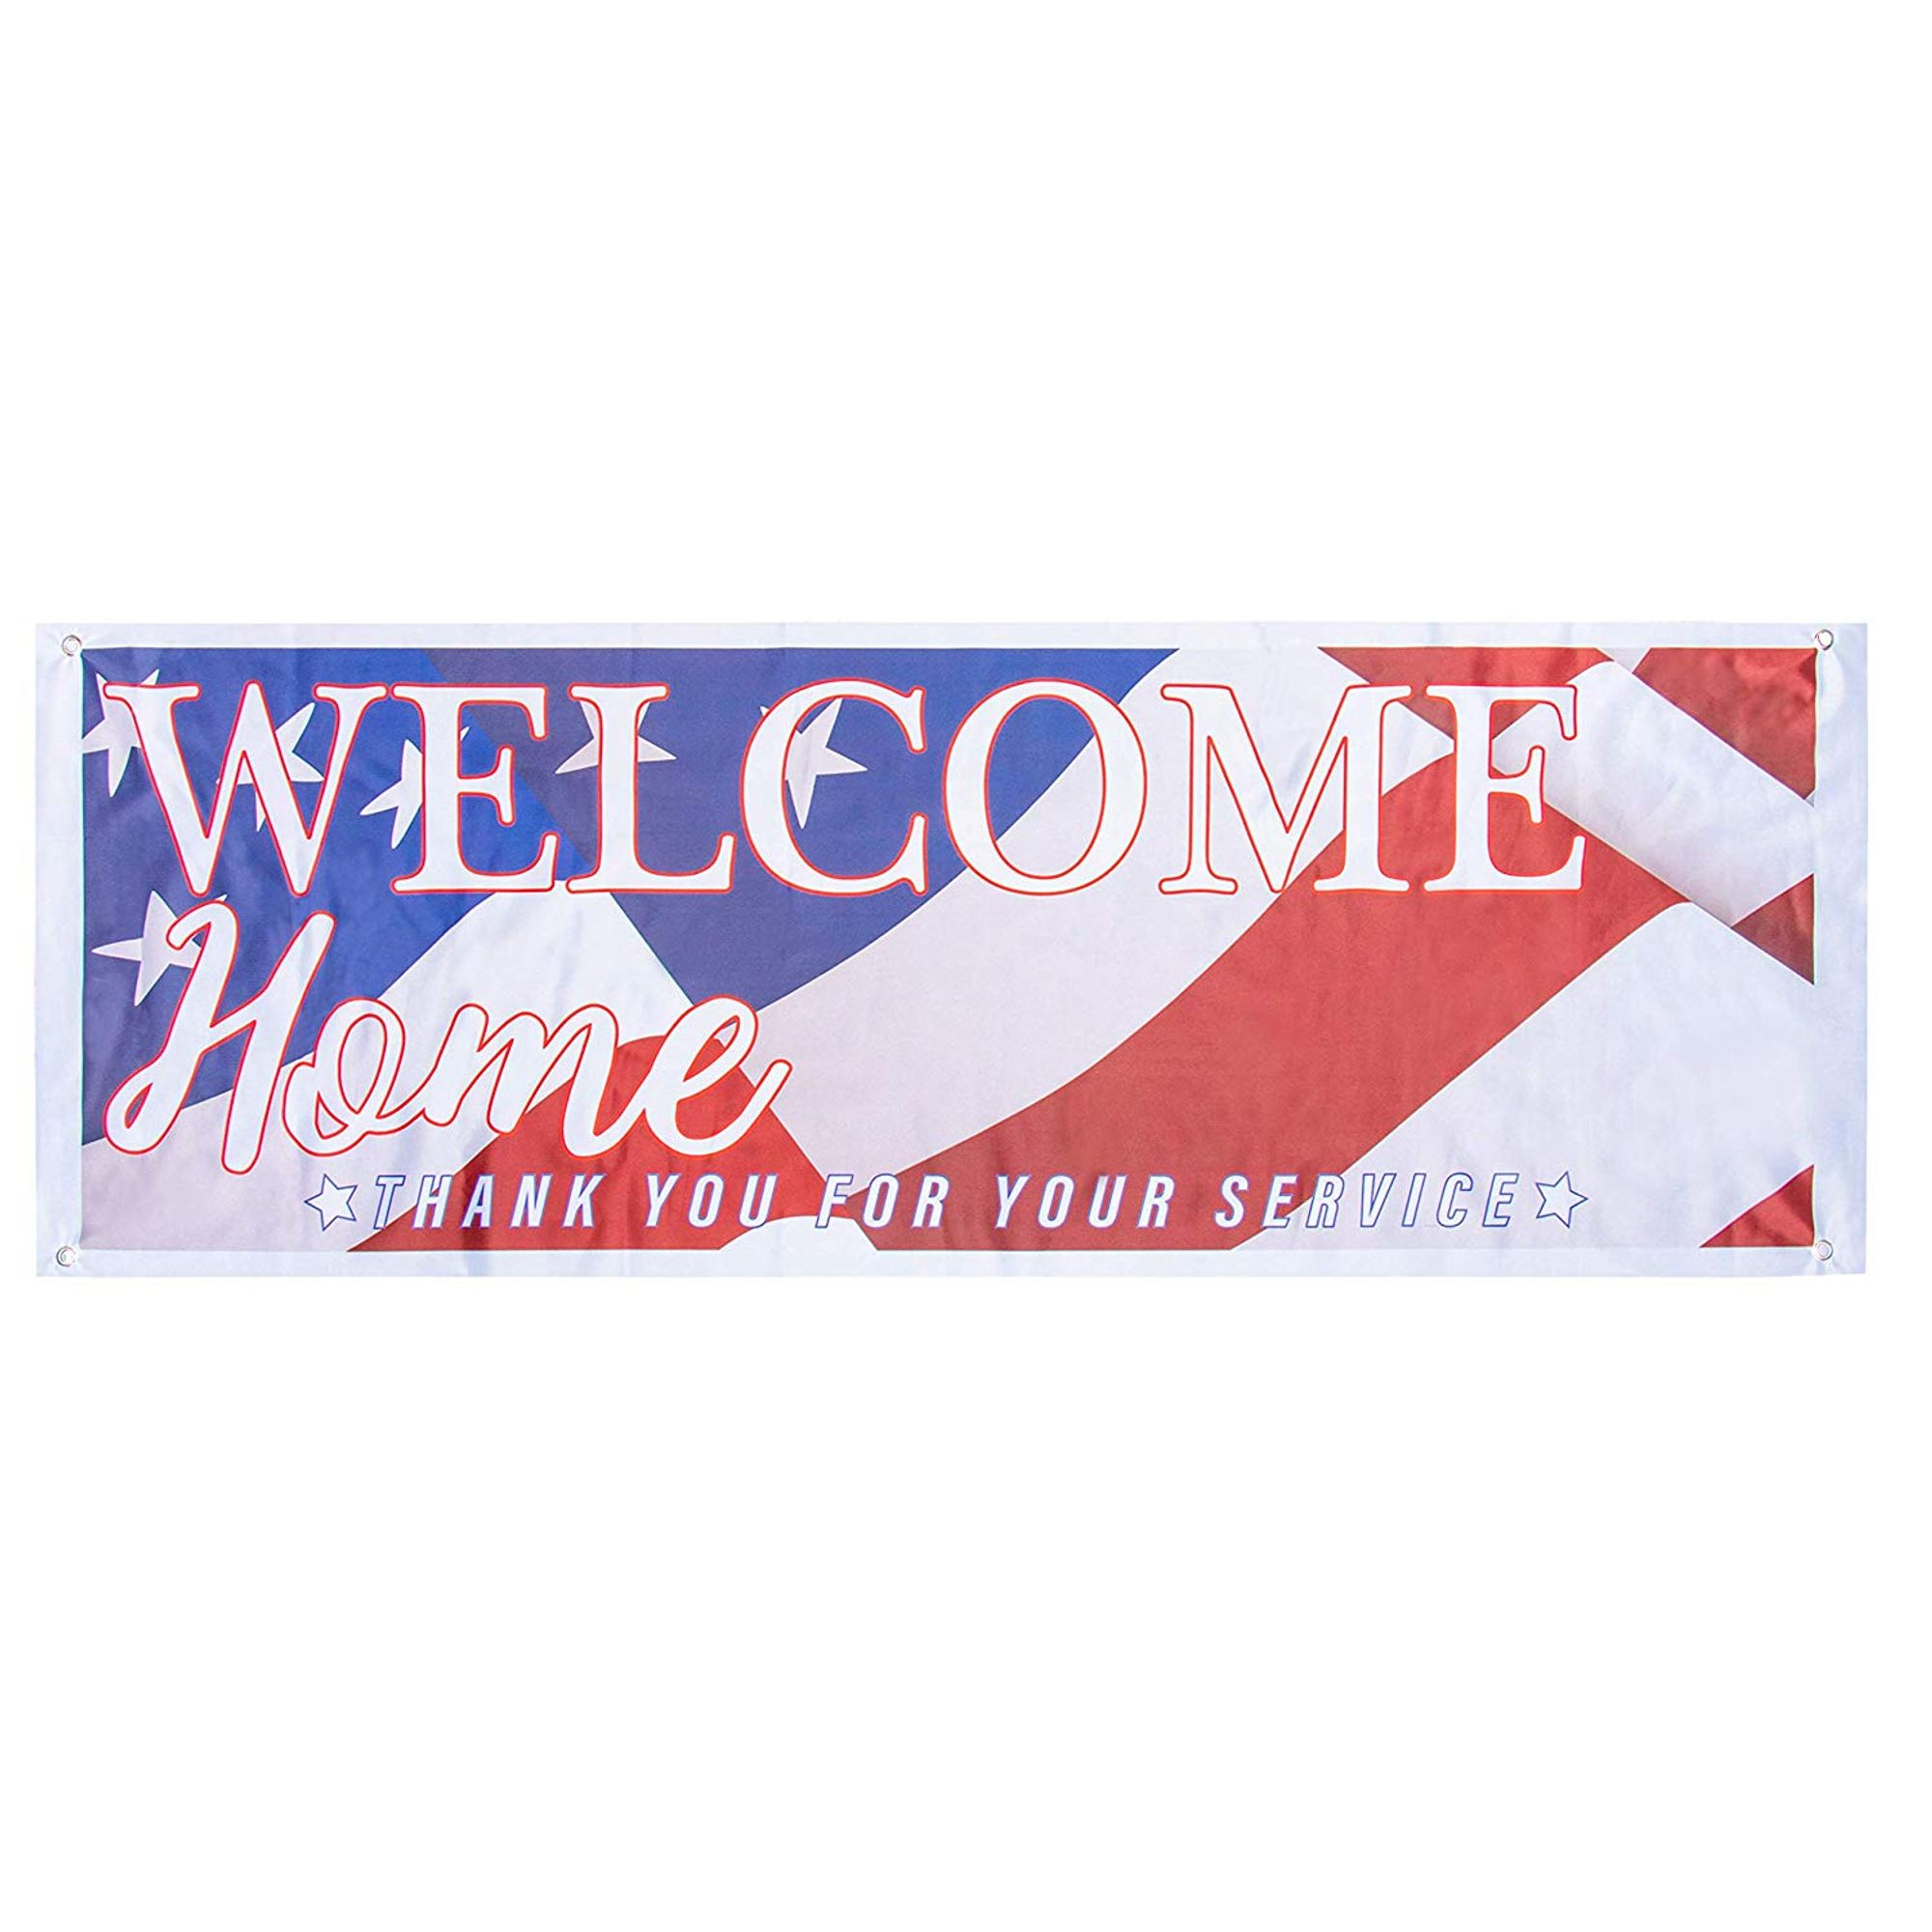 military welcome home United States  soldiers military decorations welcome home decor usa usa military military banner